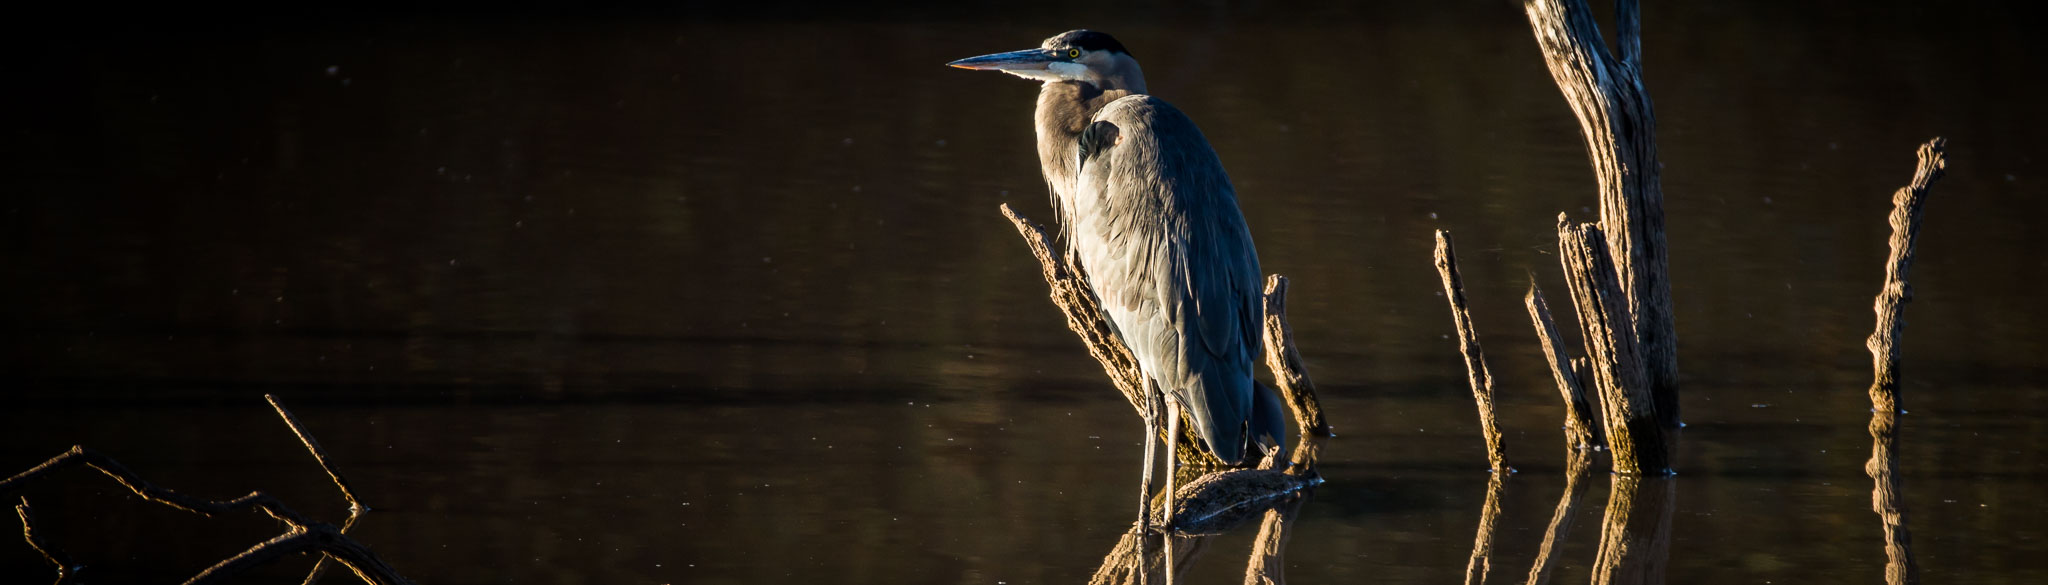 Great Blue Heron standing atop a tree stump, Bosque del Apache National Wildlife Refuge, San Antonio NM,  October 30, 2017